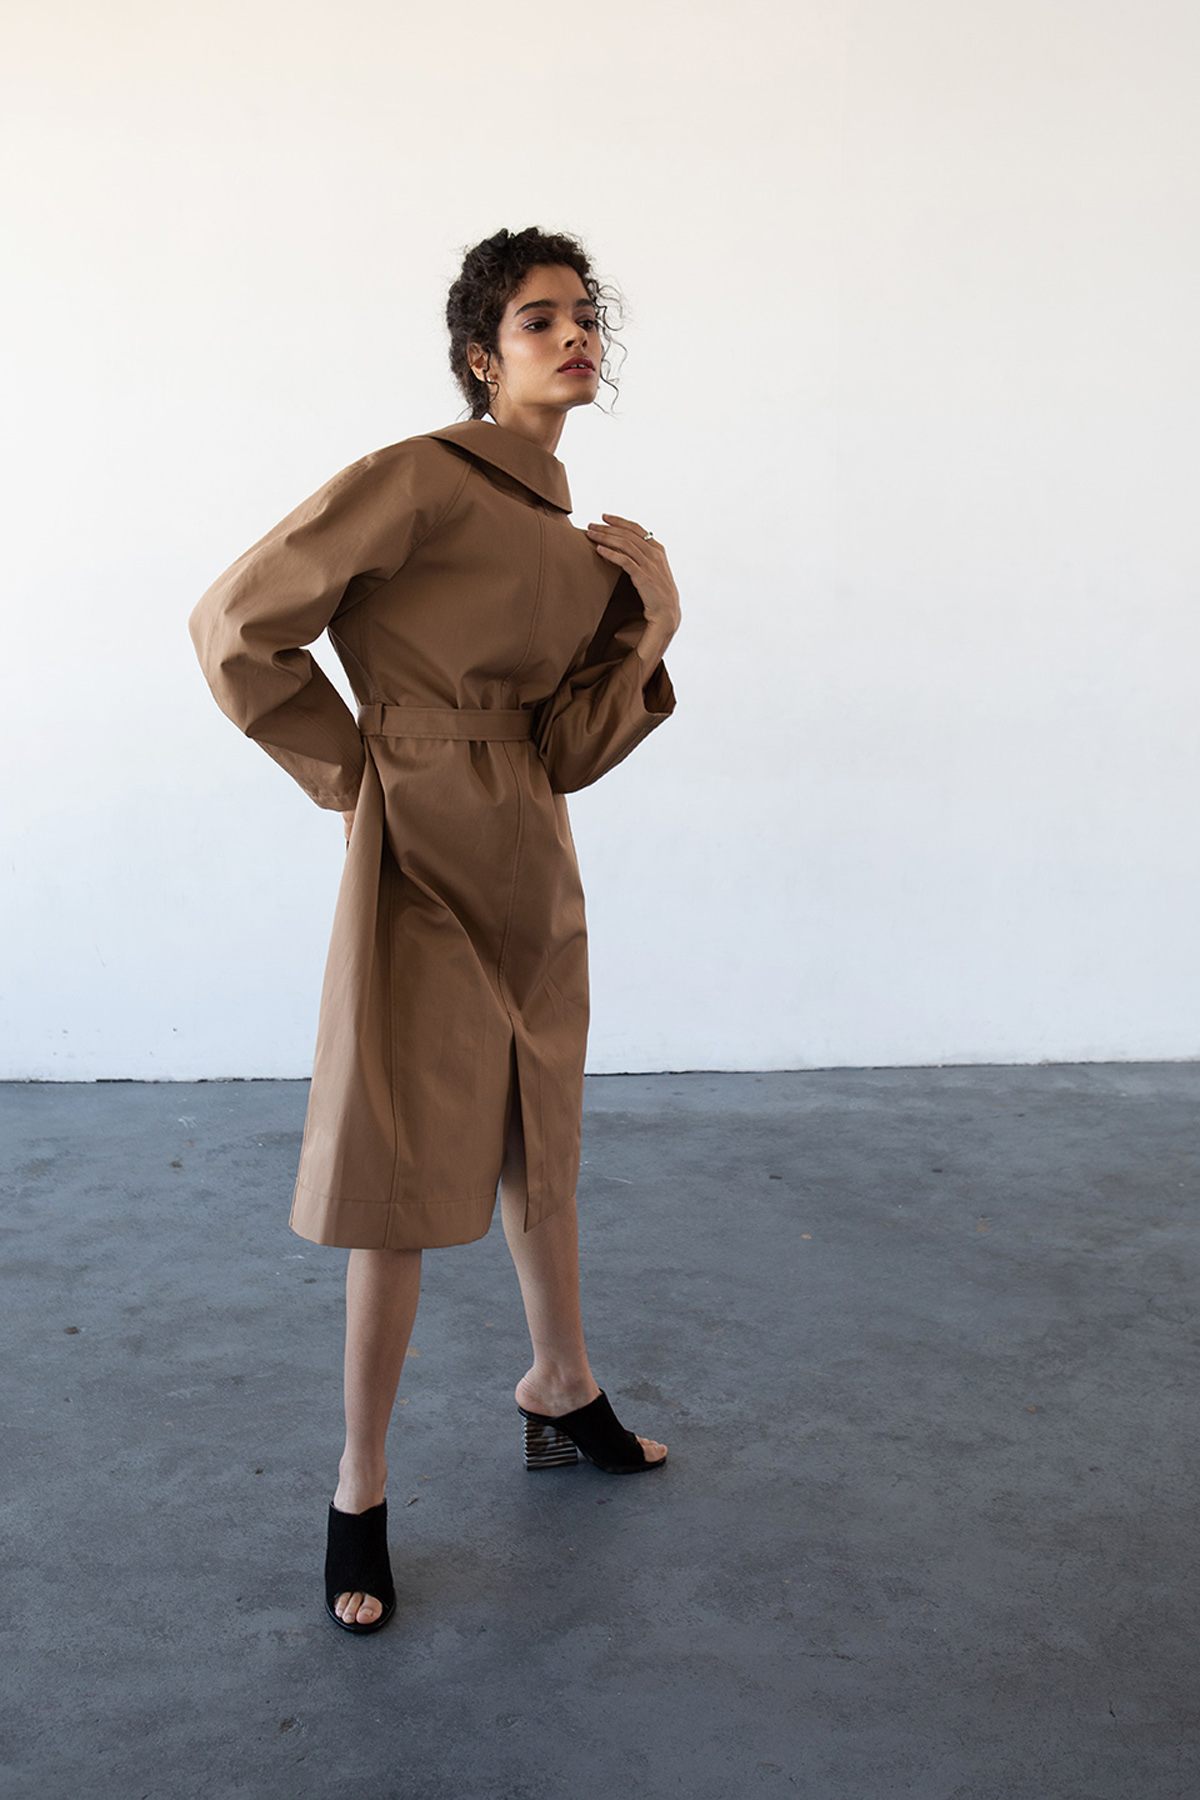 Haro in a raincoat styled shoot by Michele LoBosco, Los Angeles editorial photographer